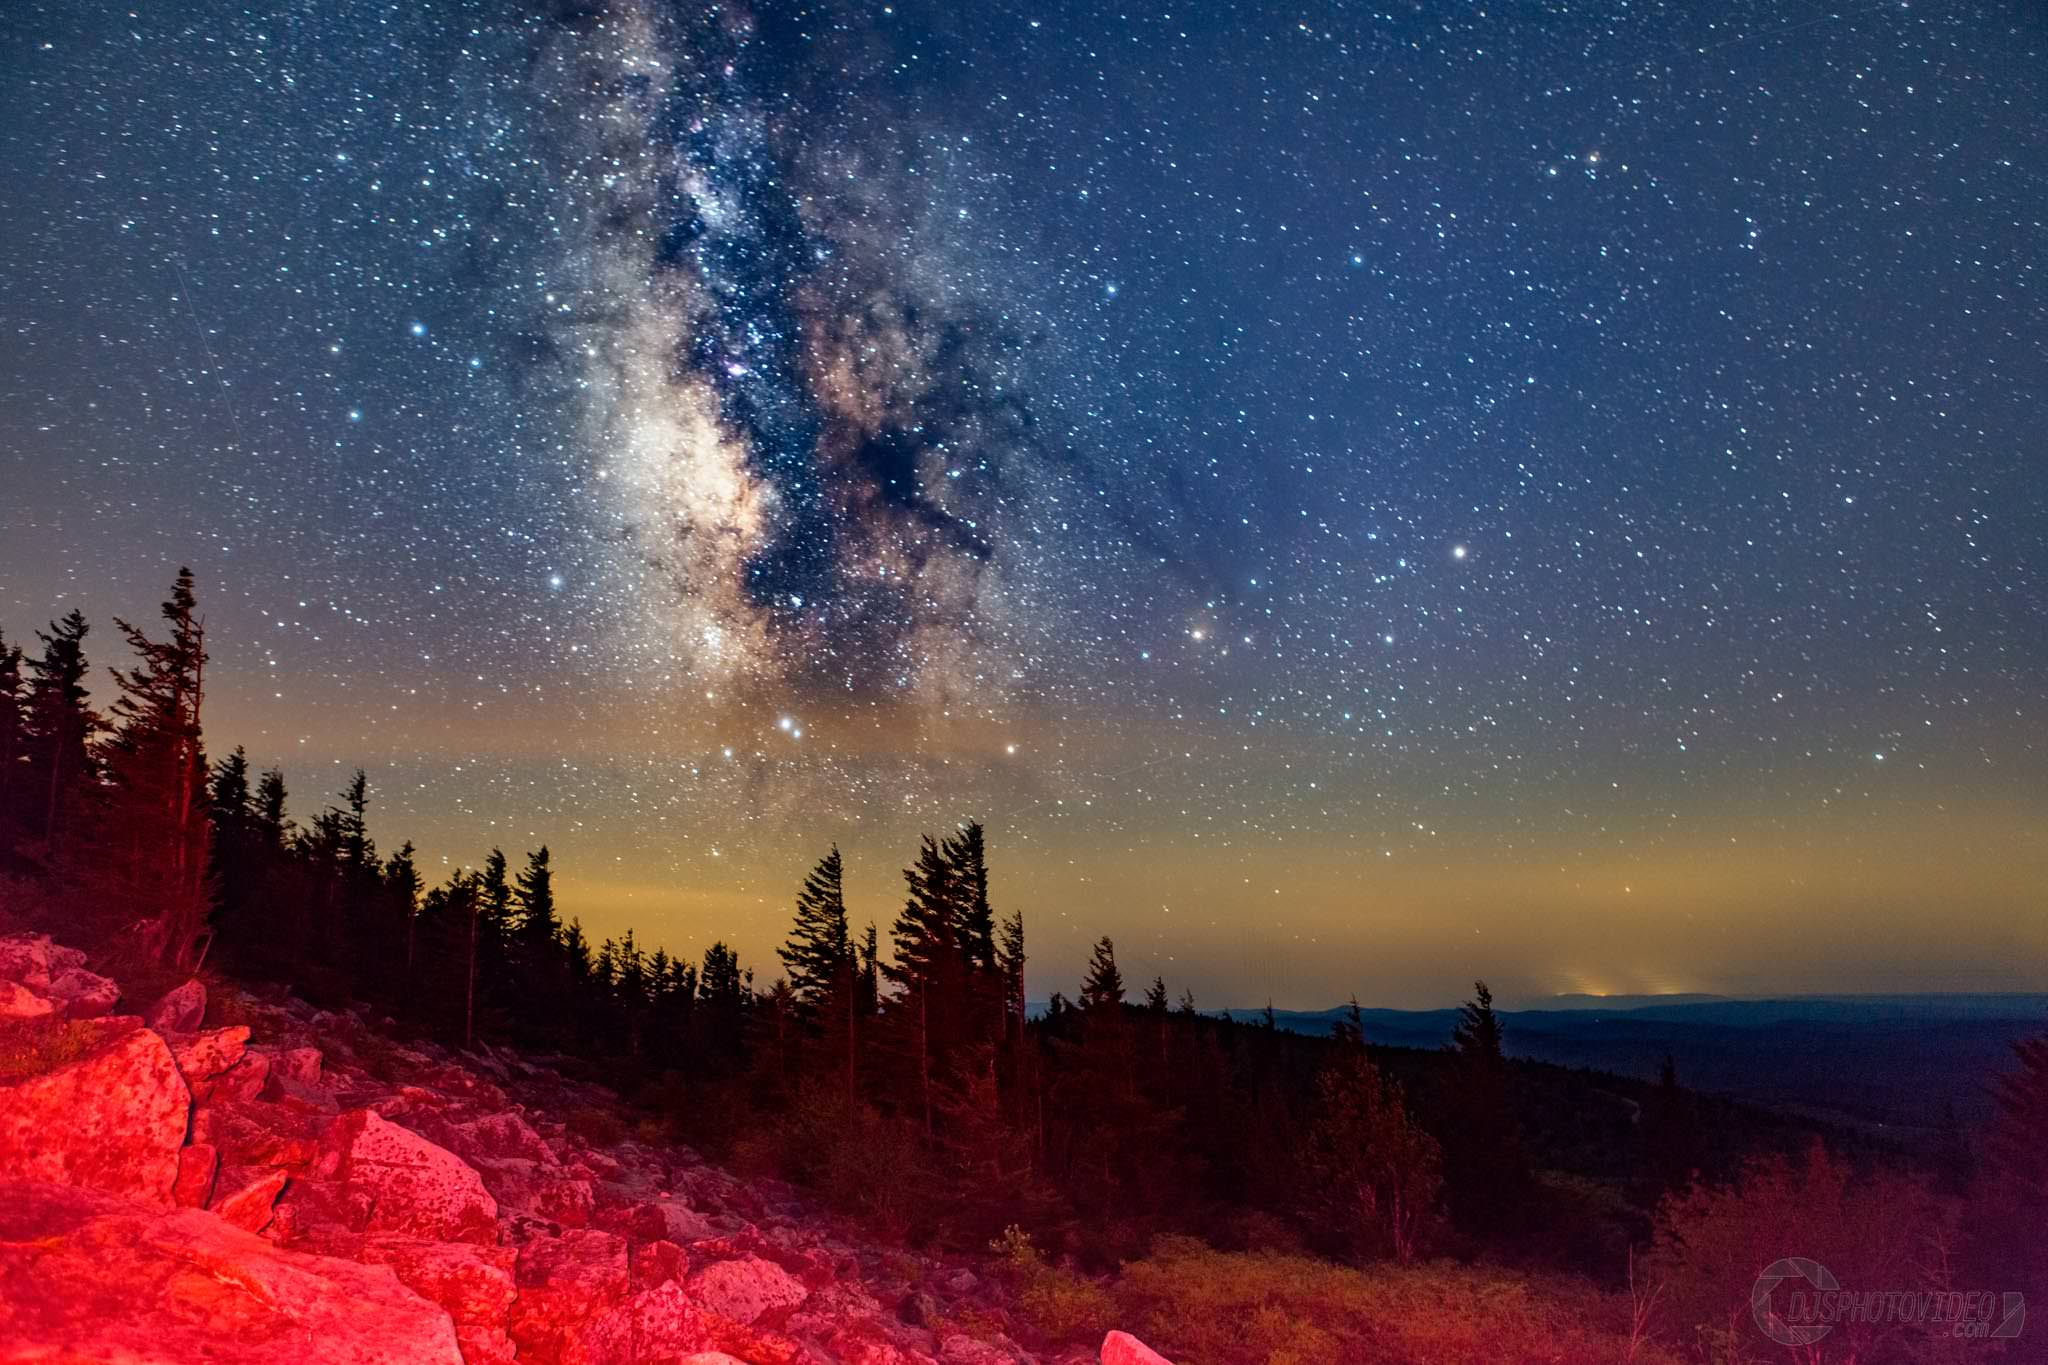 The Milky Way setting during blue hour over the Allegheny Mountains - DanielJStein - bit.ly2DEHEwj